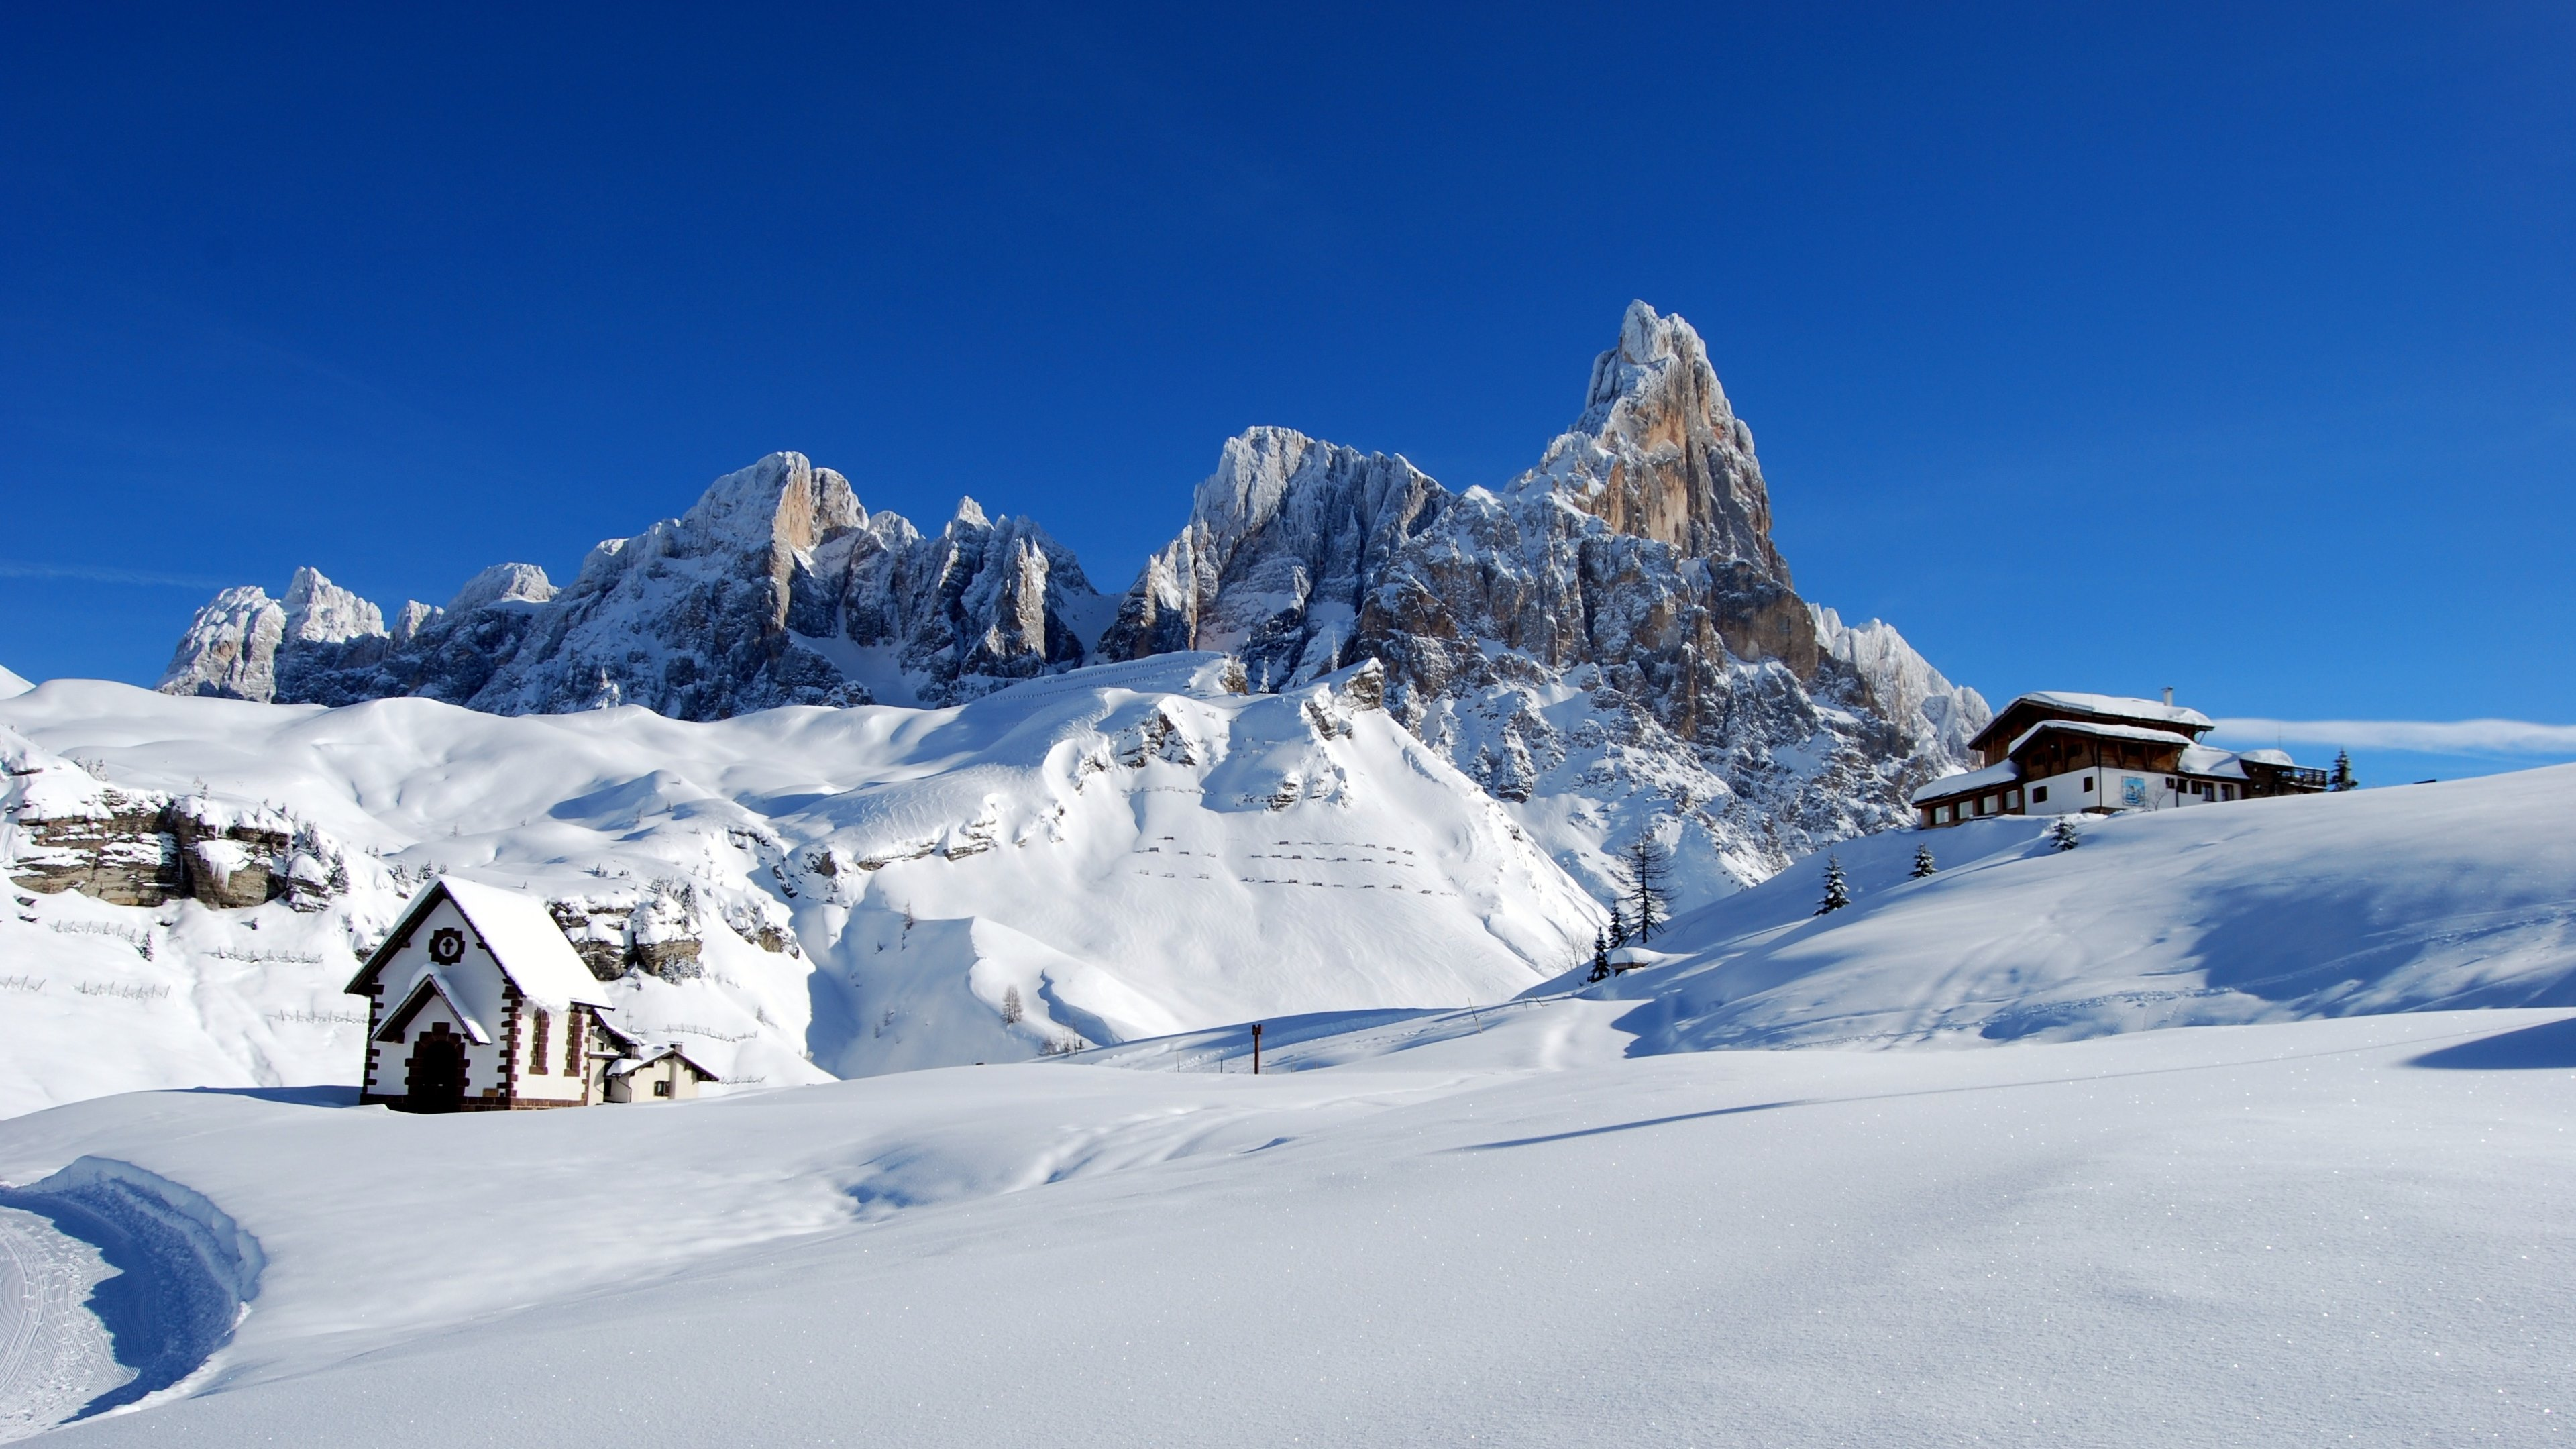 Dolomites Alps Italy Winter Snow Wallpapers HD Wallpapers 3840x2160